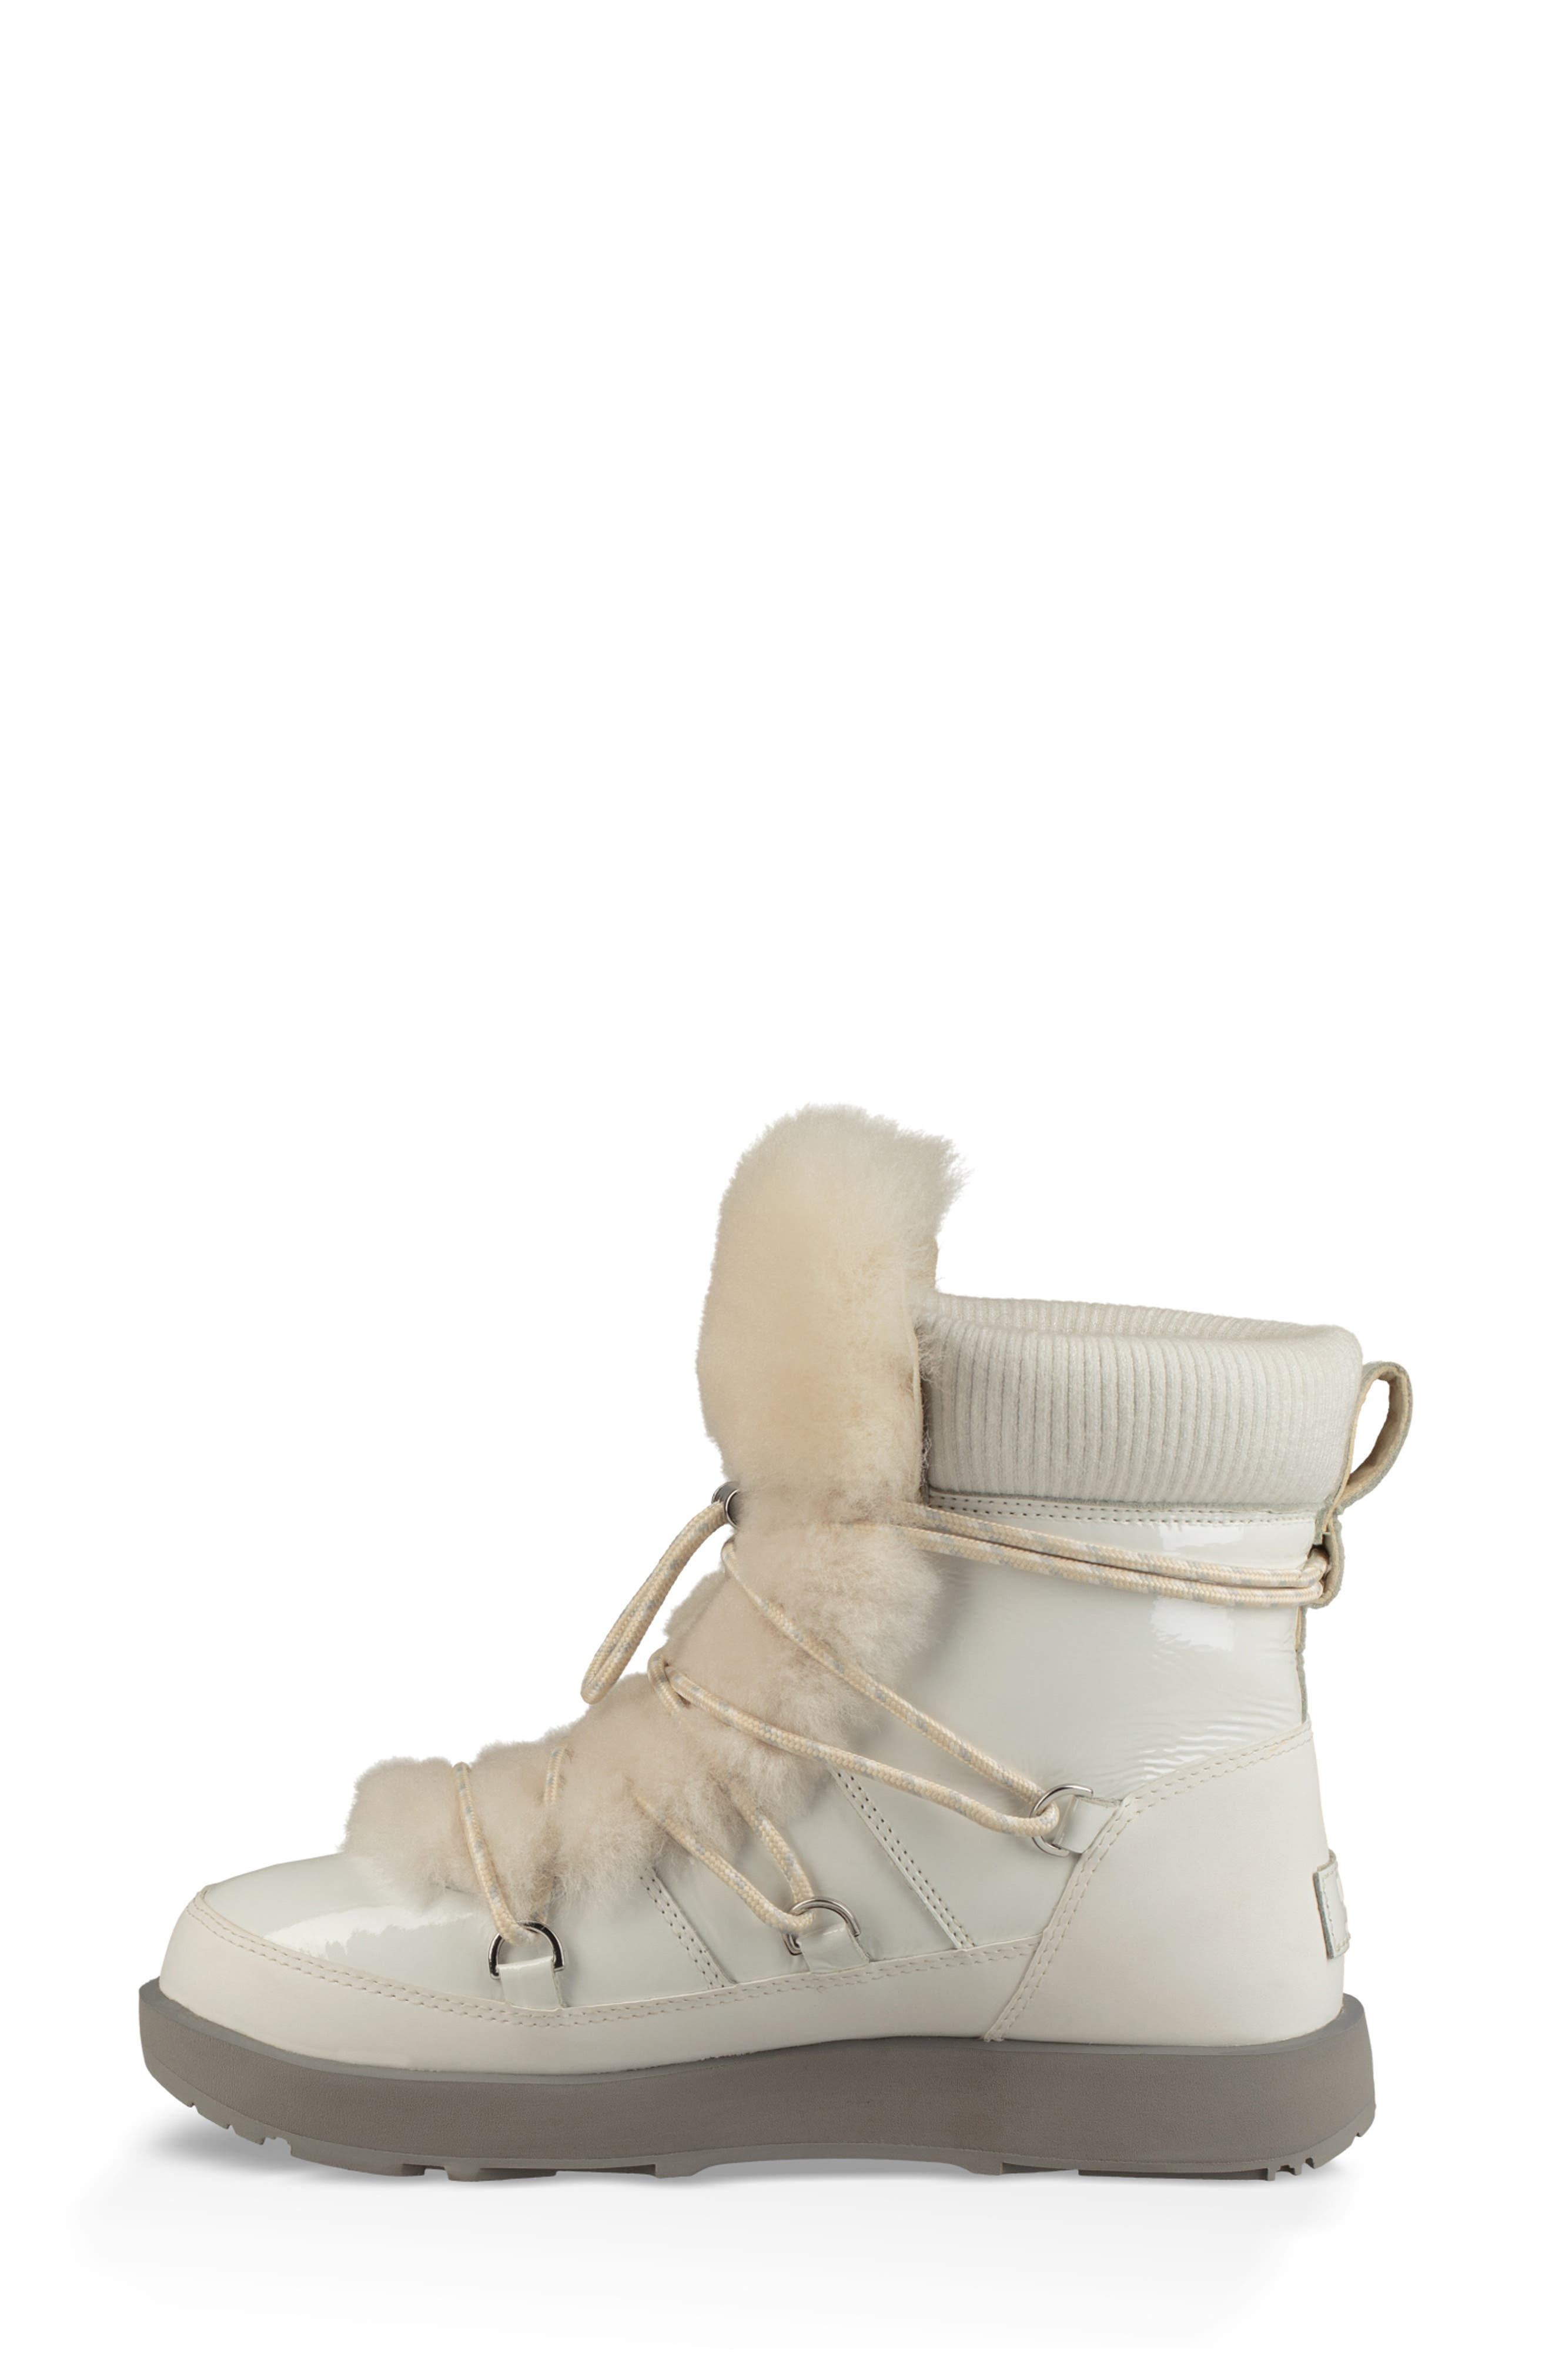 Highland Genuine Shearling Waterproof Bootie,                             Alternate thumbnail 6, color,                             WHITE LEATHER